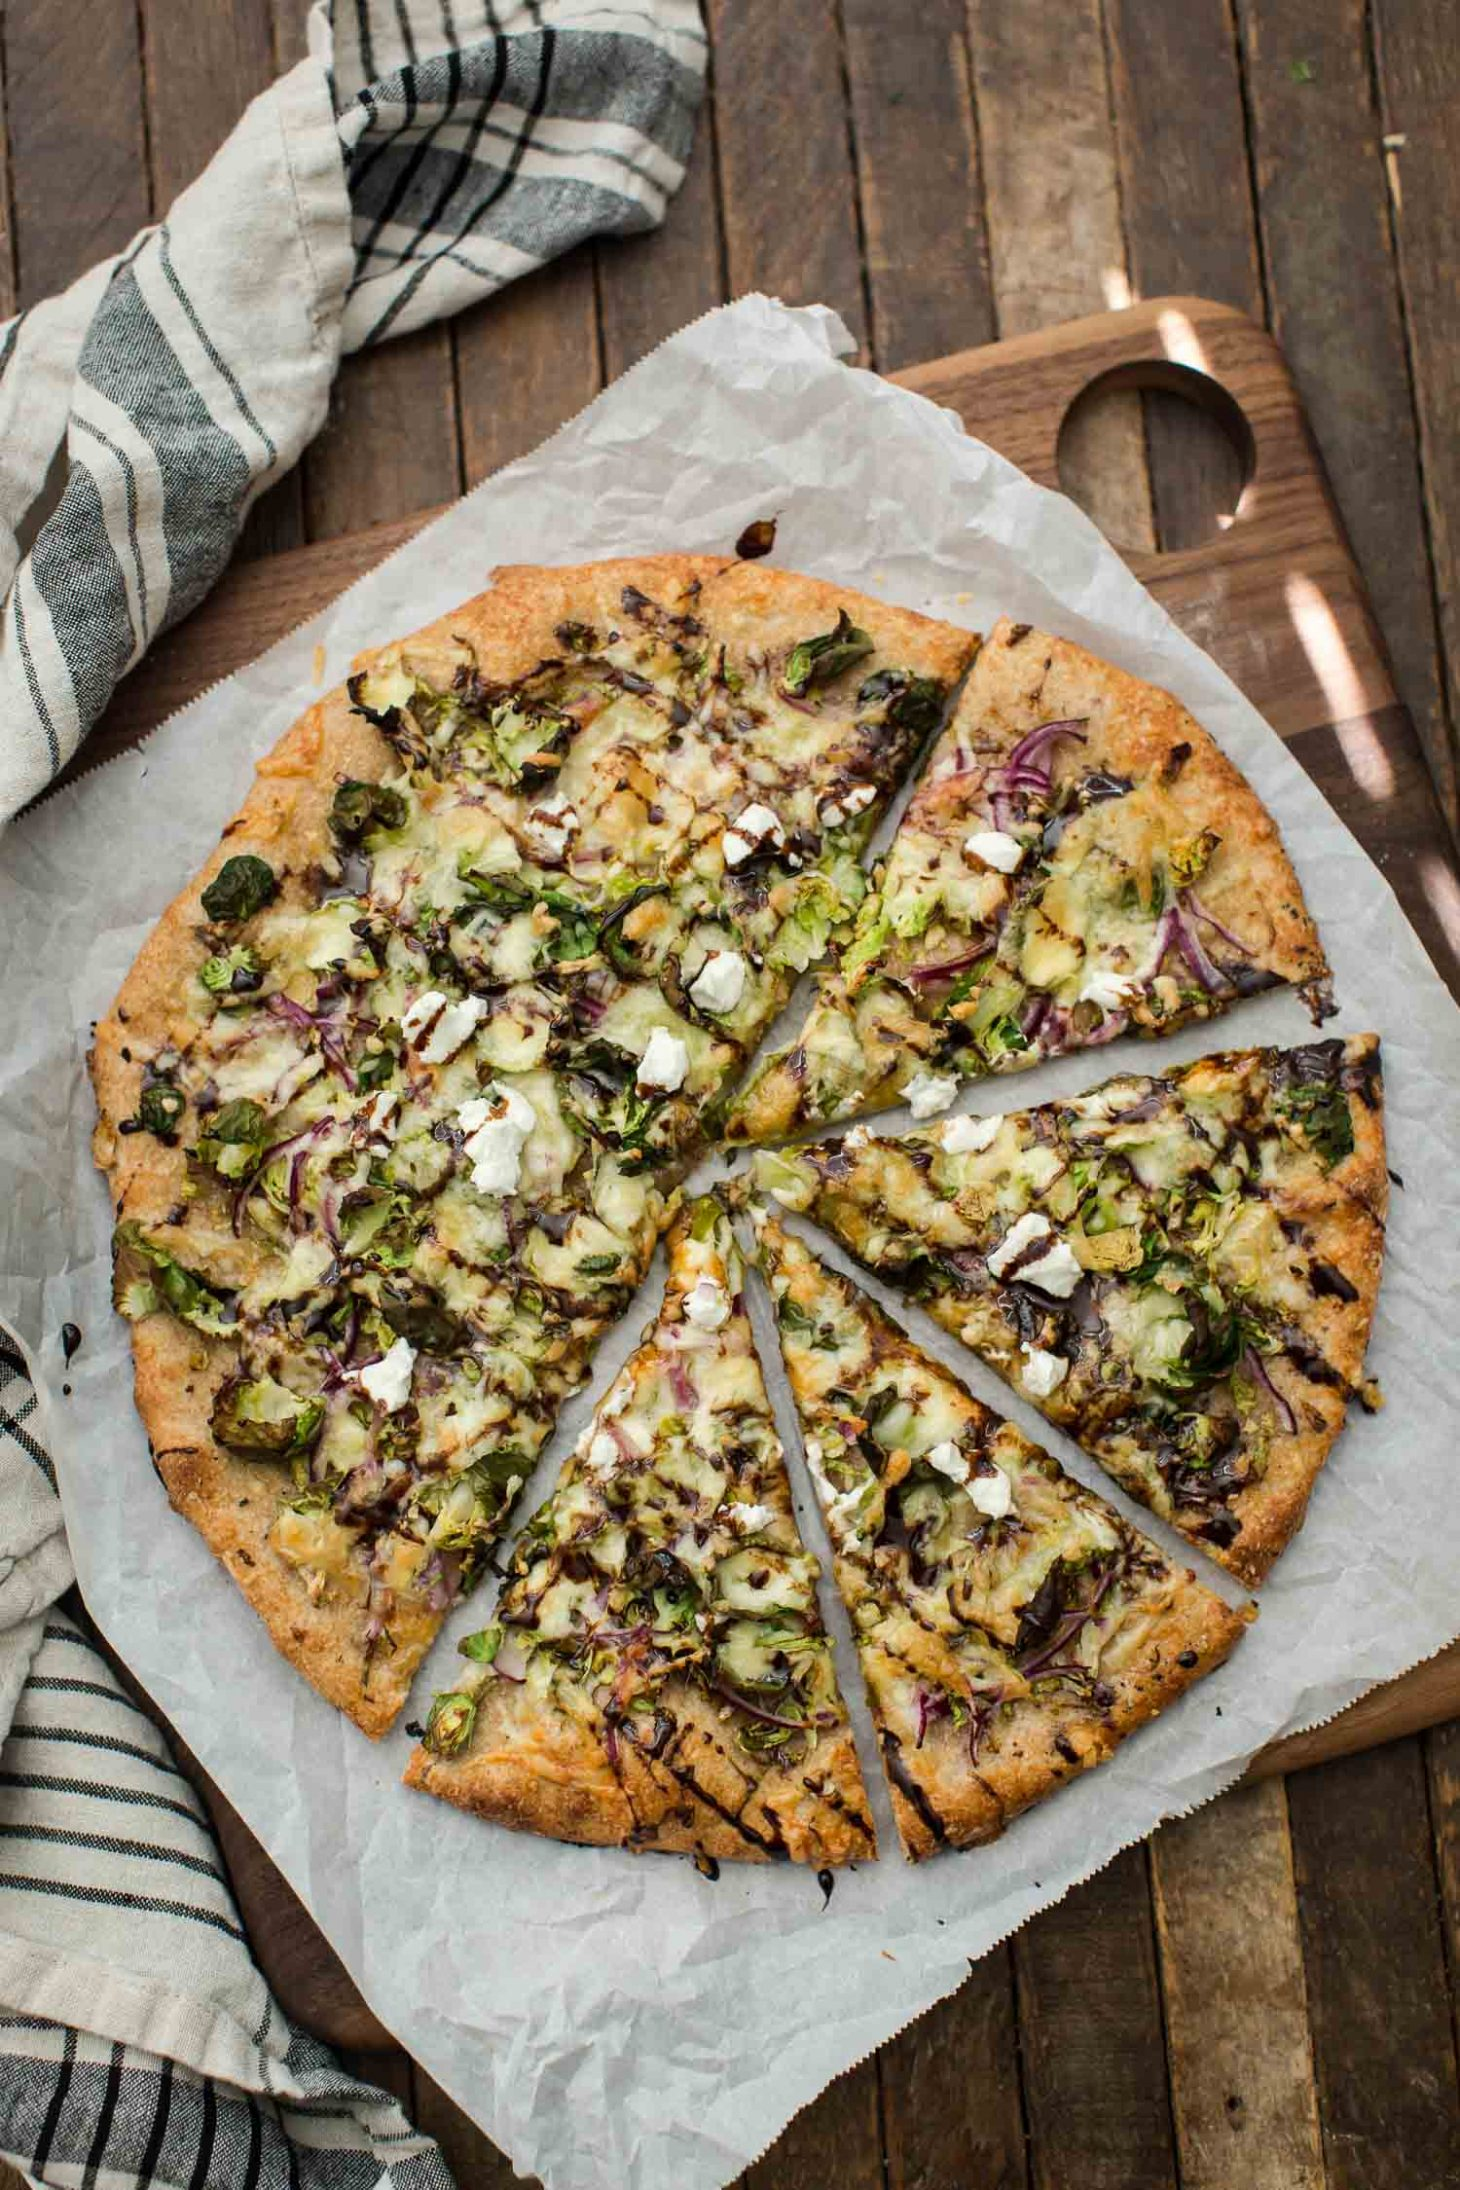 Brussels Sprout Pizza with Goat Cheese and Balsamic Drizzle | @naturallyella